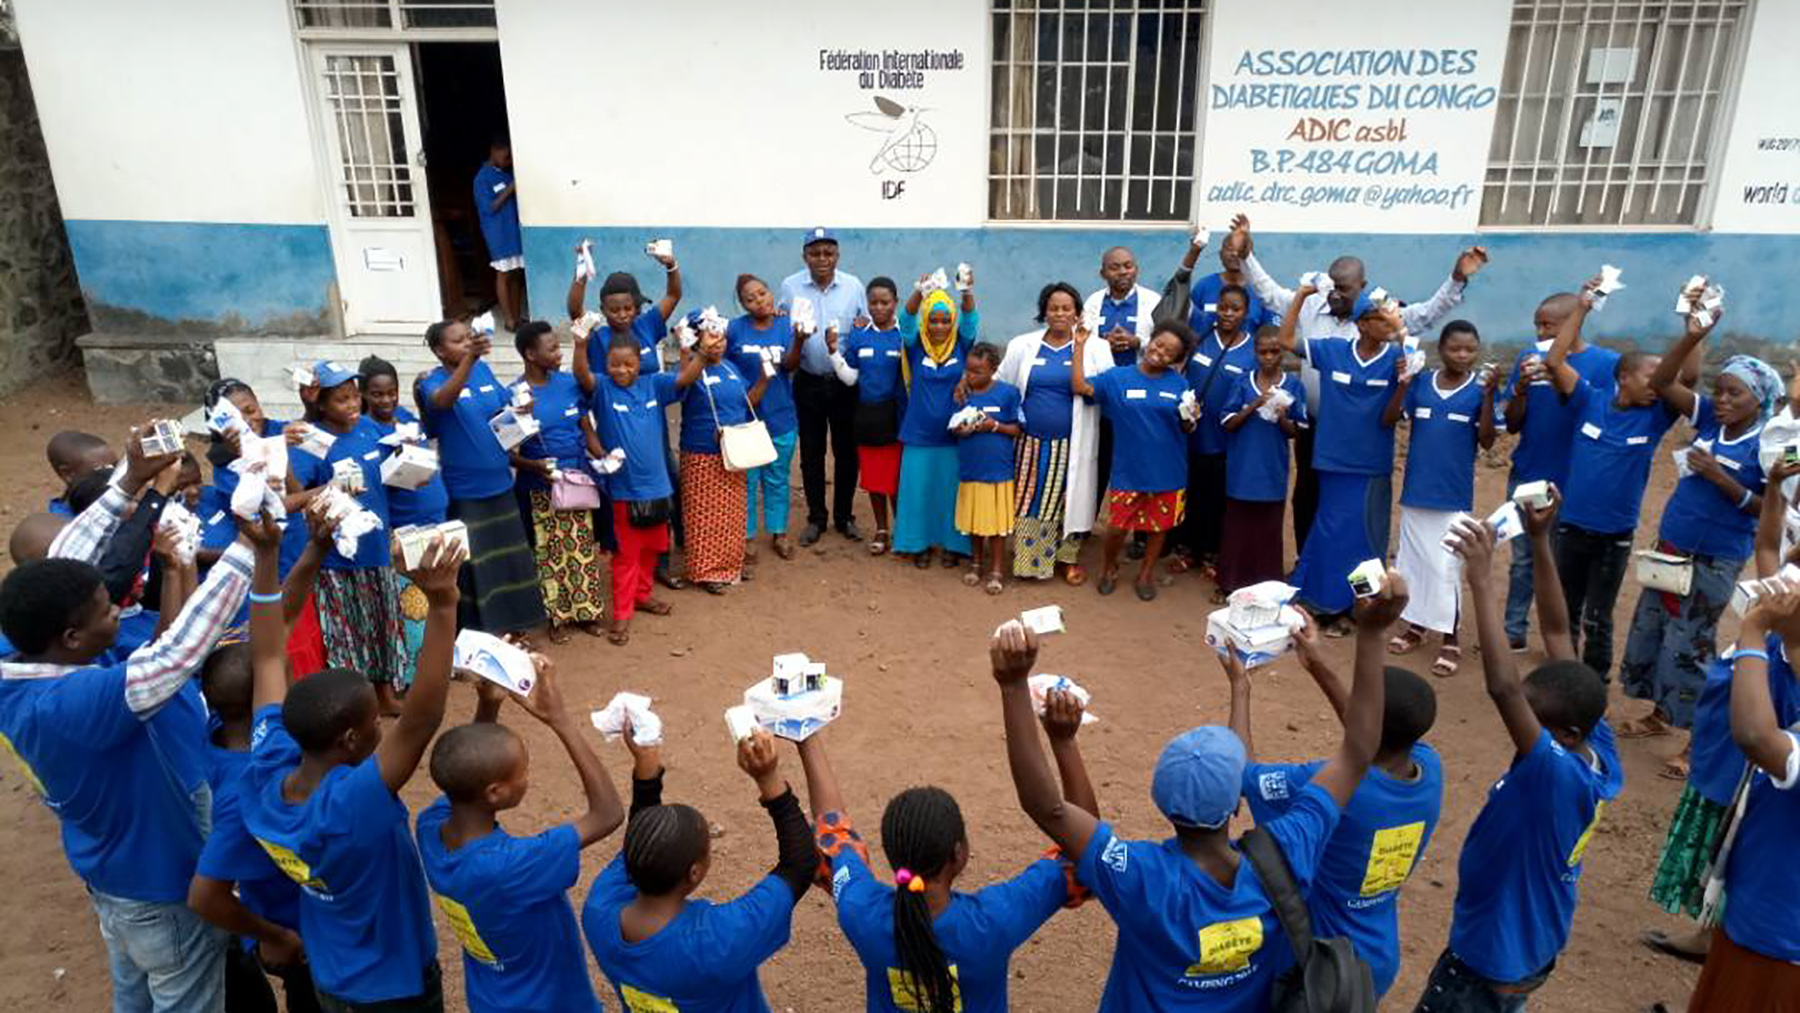 Association des Diabétiques du Congo hosts an annual summer camp in Goma, Democratic Republic of Congo, for young people living with diabetes. The camp teaches youth how to manage diabetes with medication, nutrition, exercise and self-care. (Photo courtesy of Association des Diabétiques du Congo)